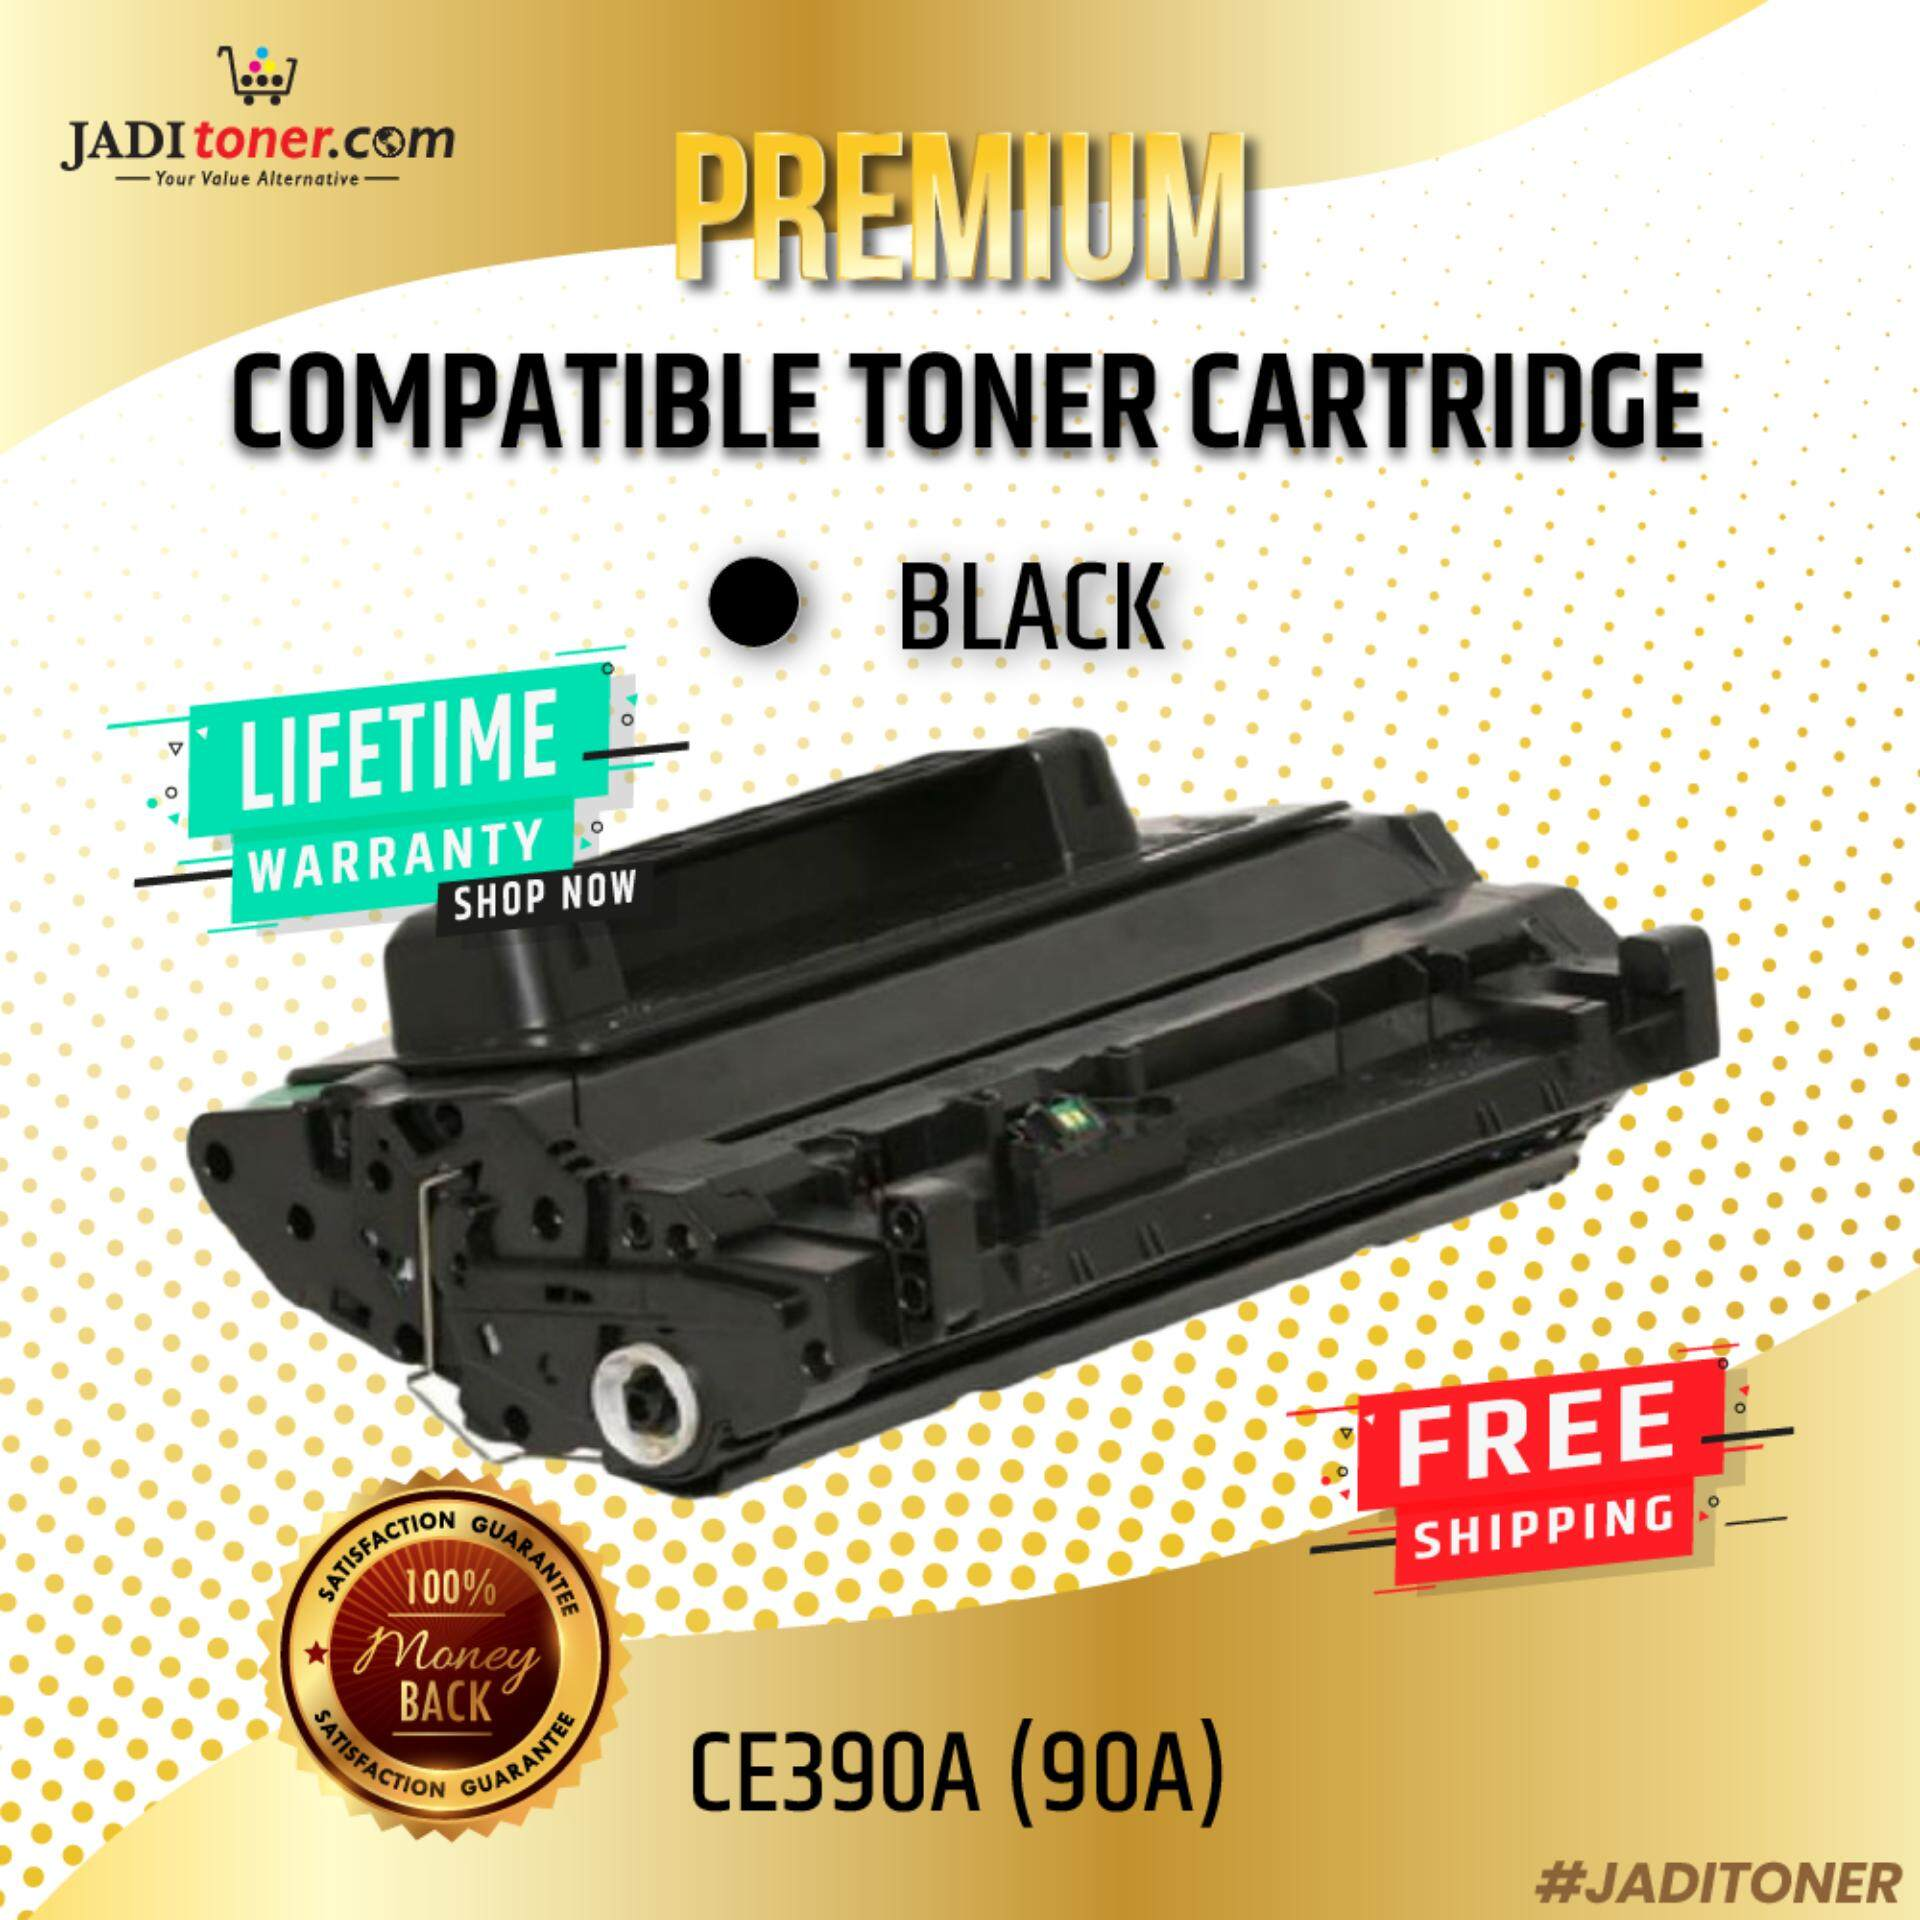 Compatible CE390A (90A) Black Toner Cartridge For Use In HP LaserJet Enteprise M4555h MFP/Enterprise 600/M601/M602/M603